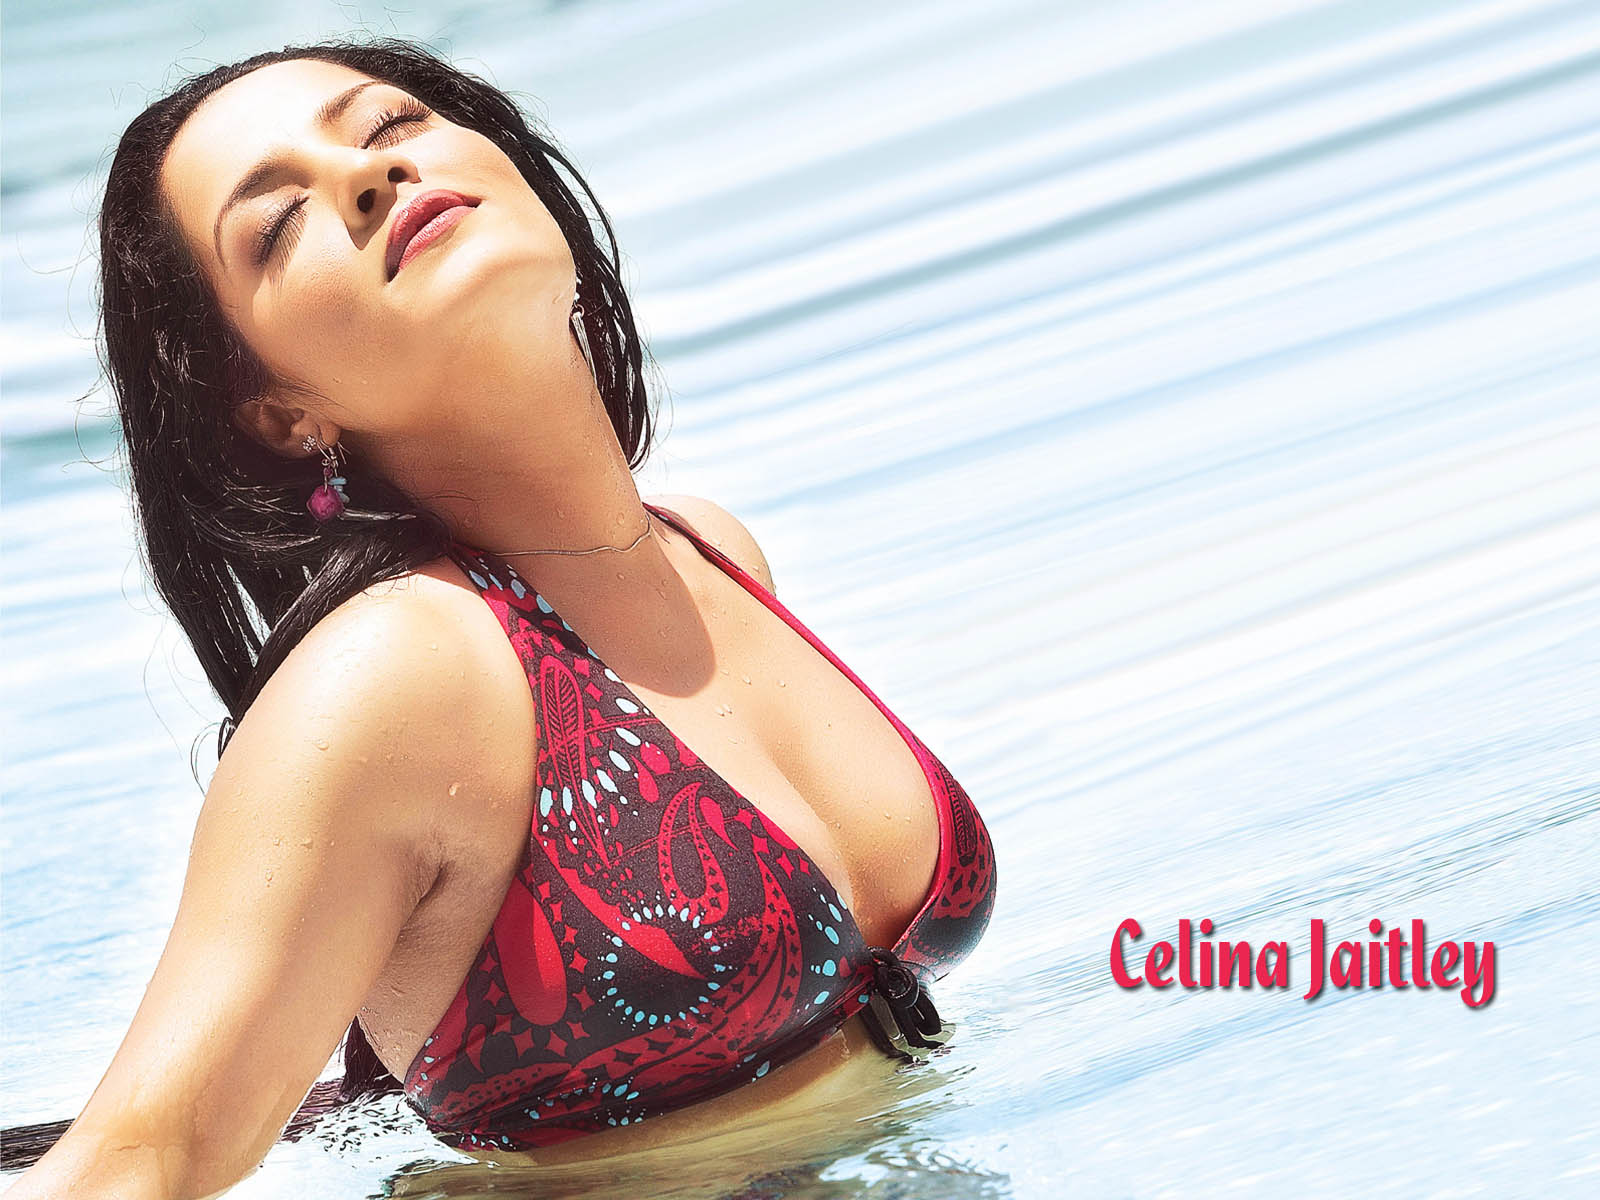 Celina hot / Discount on contact lenses